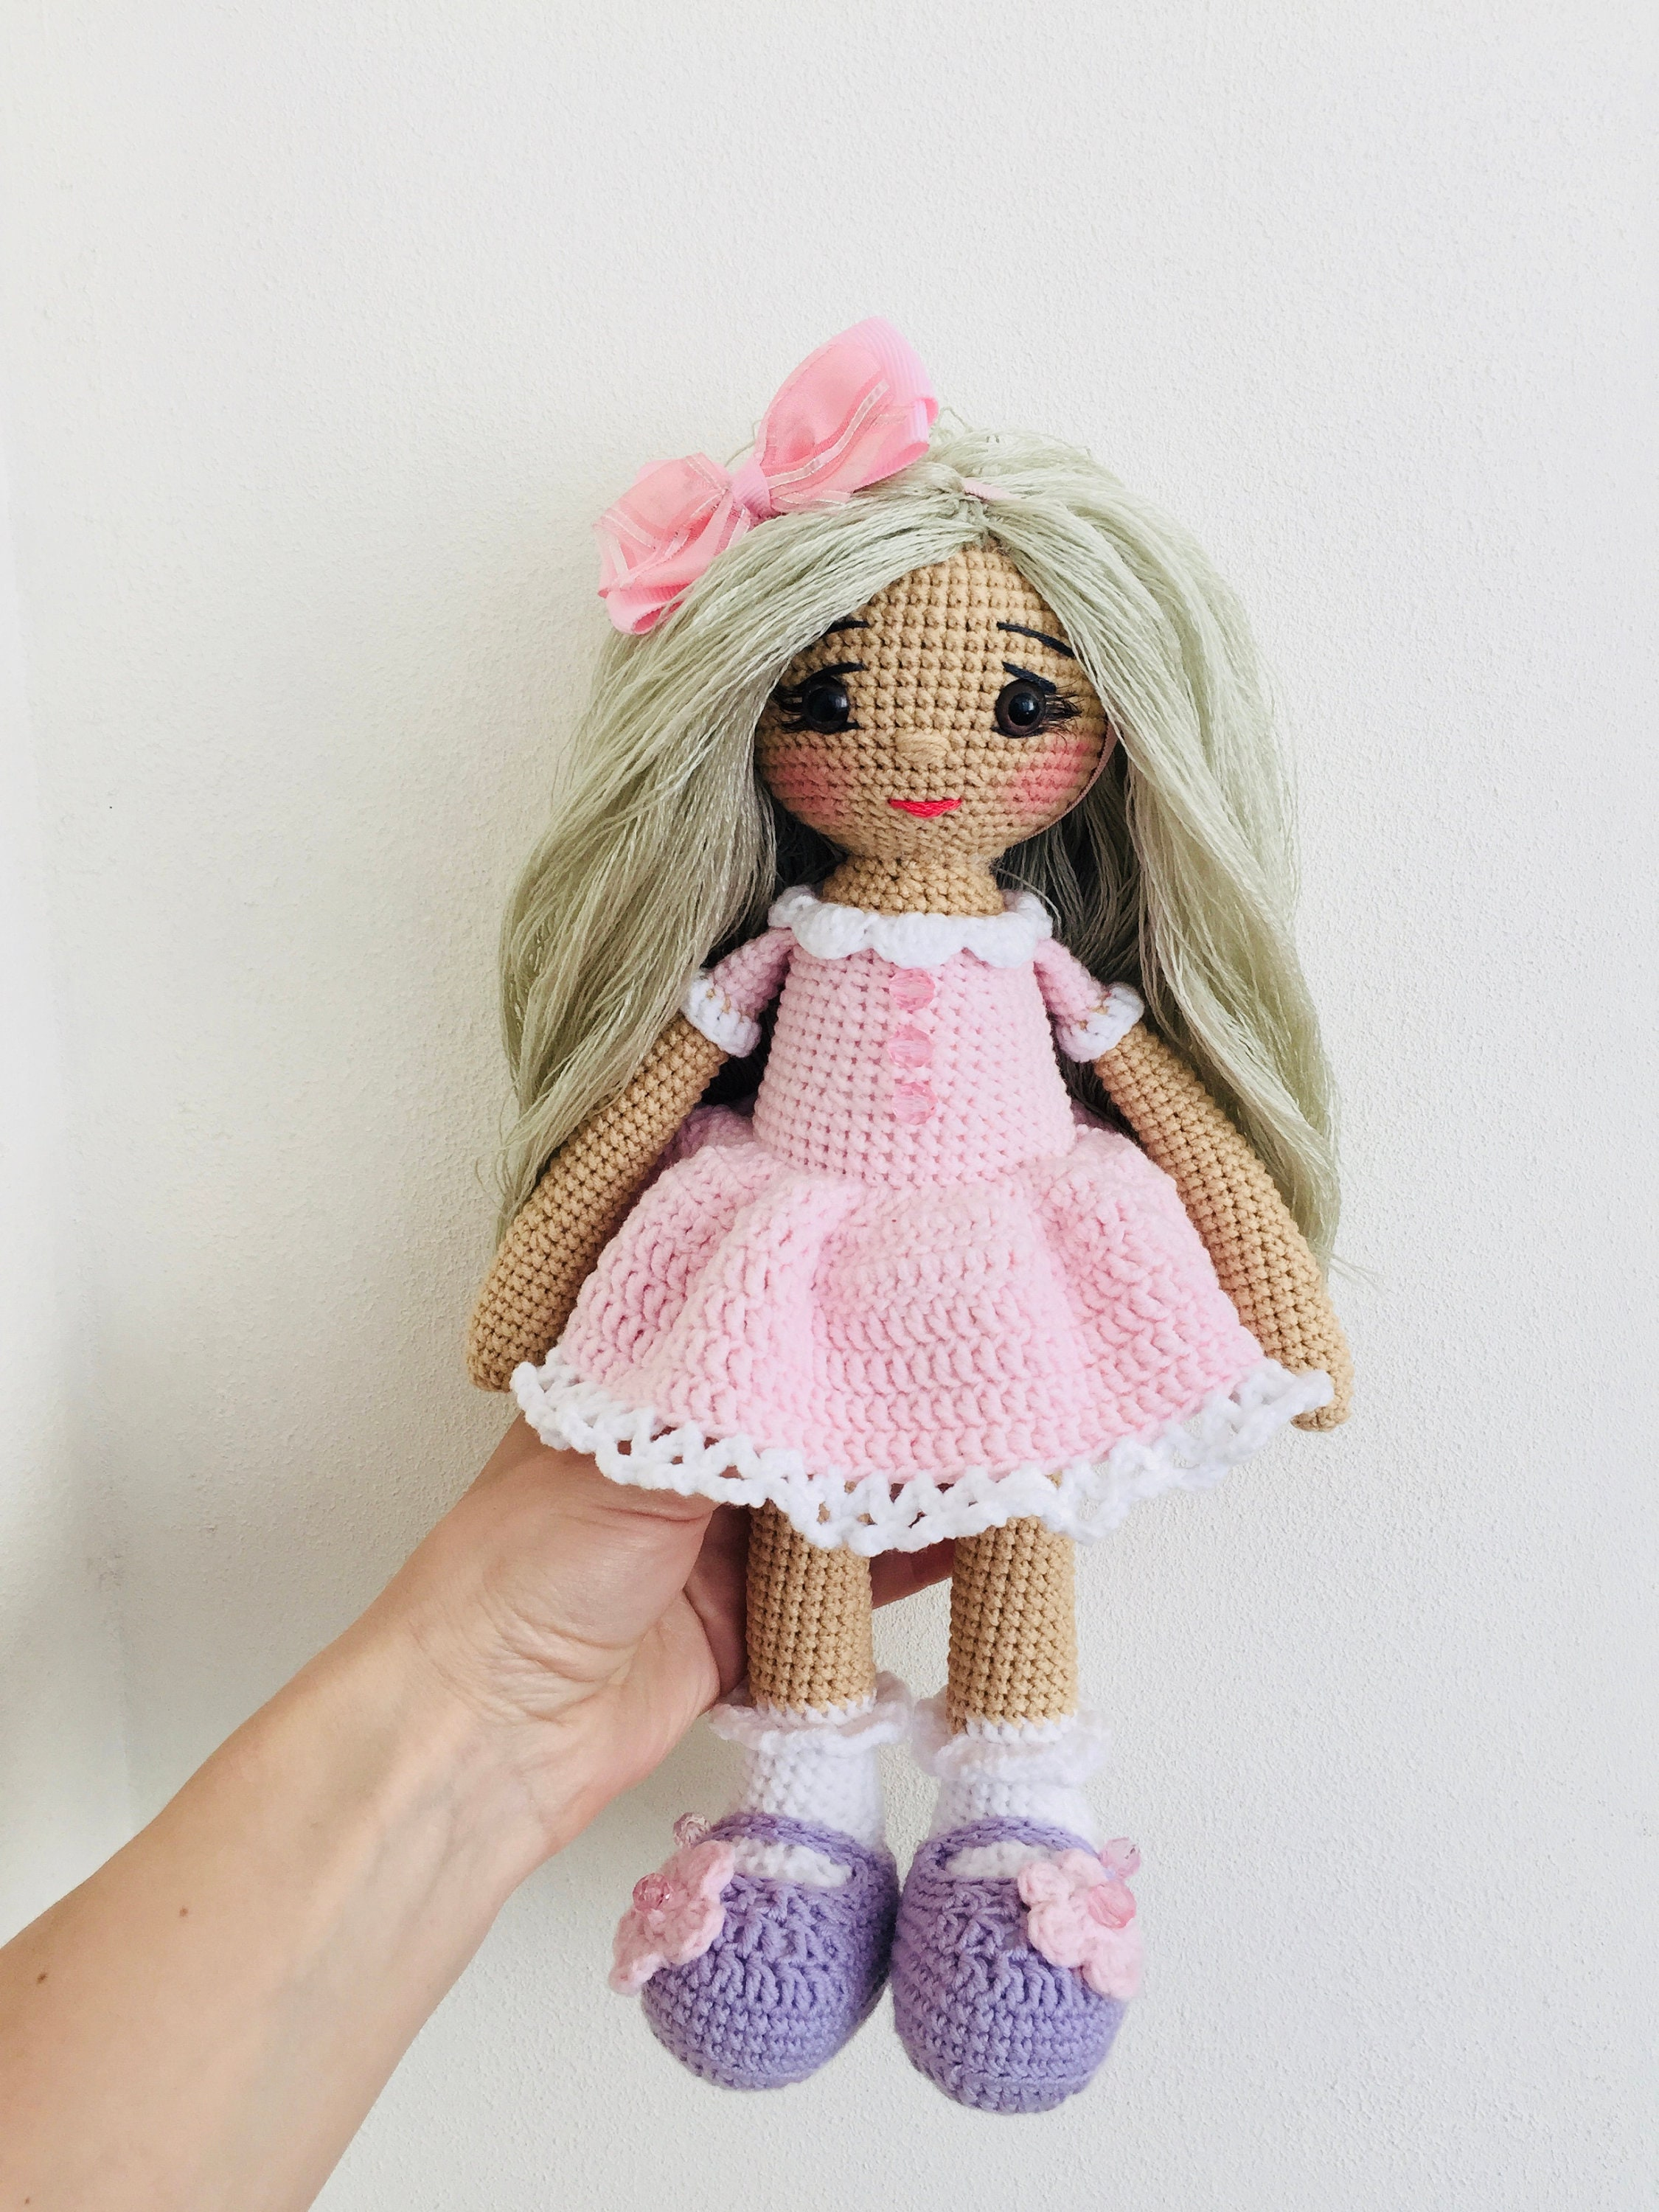 Crochet Doll In Pink Dress Knitted Doll Amigurumi Doll Crochet Etsy